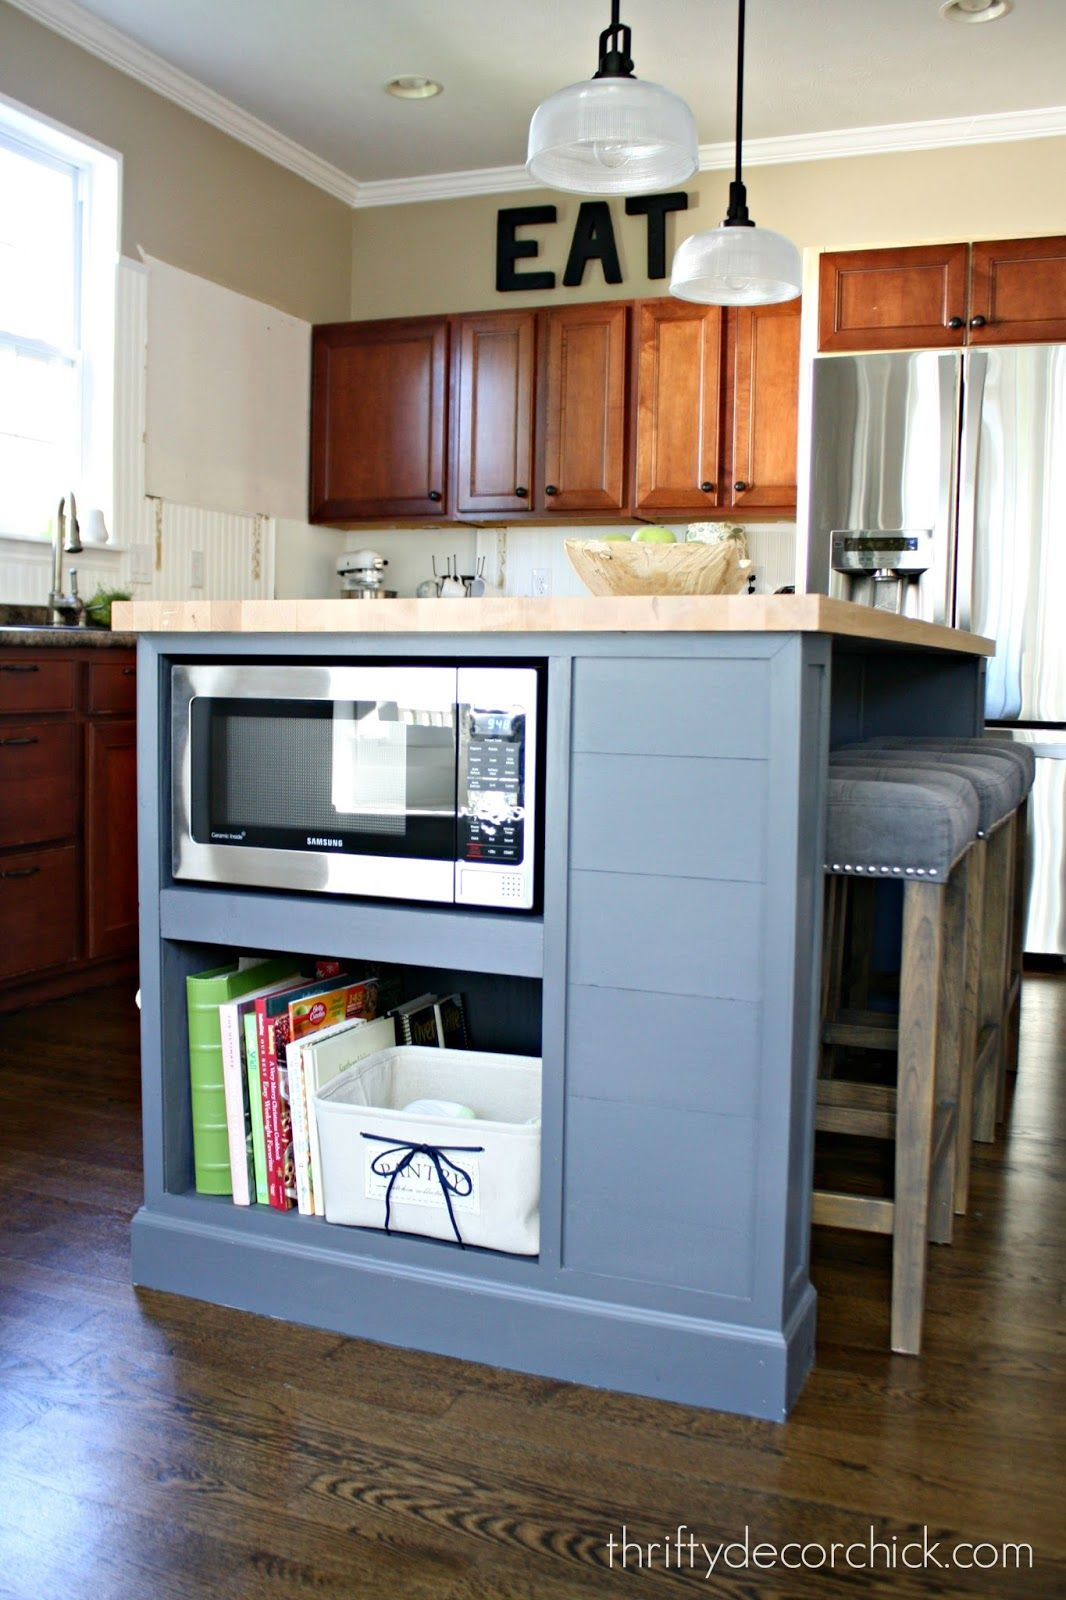 Microwave in the Island! (Finally!) | Pinterest | Kitchens, Thrifty ...